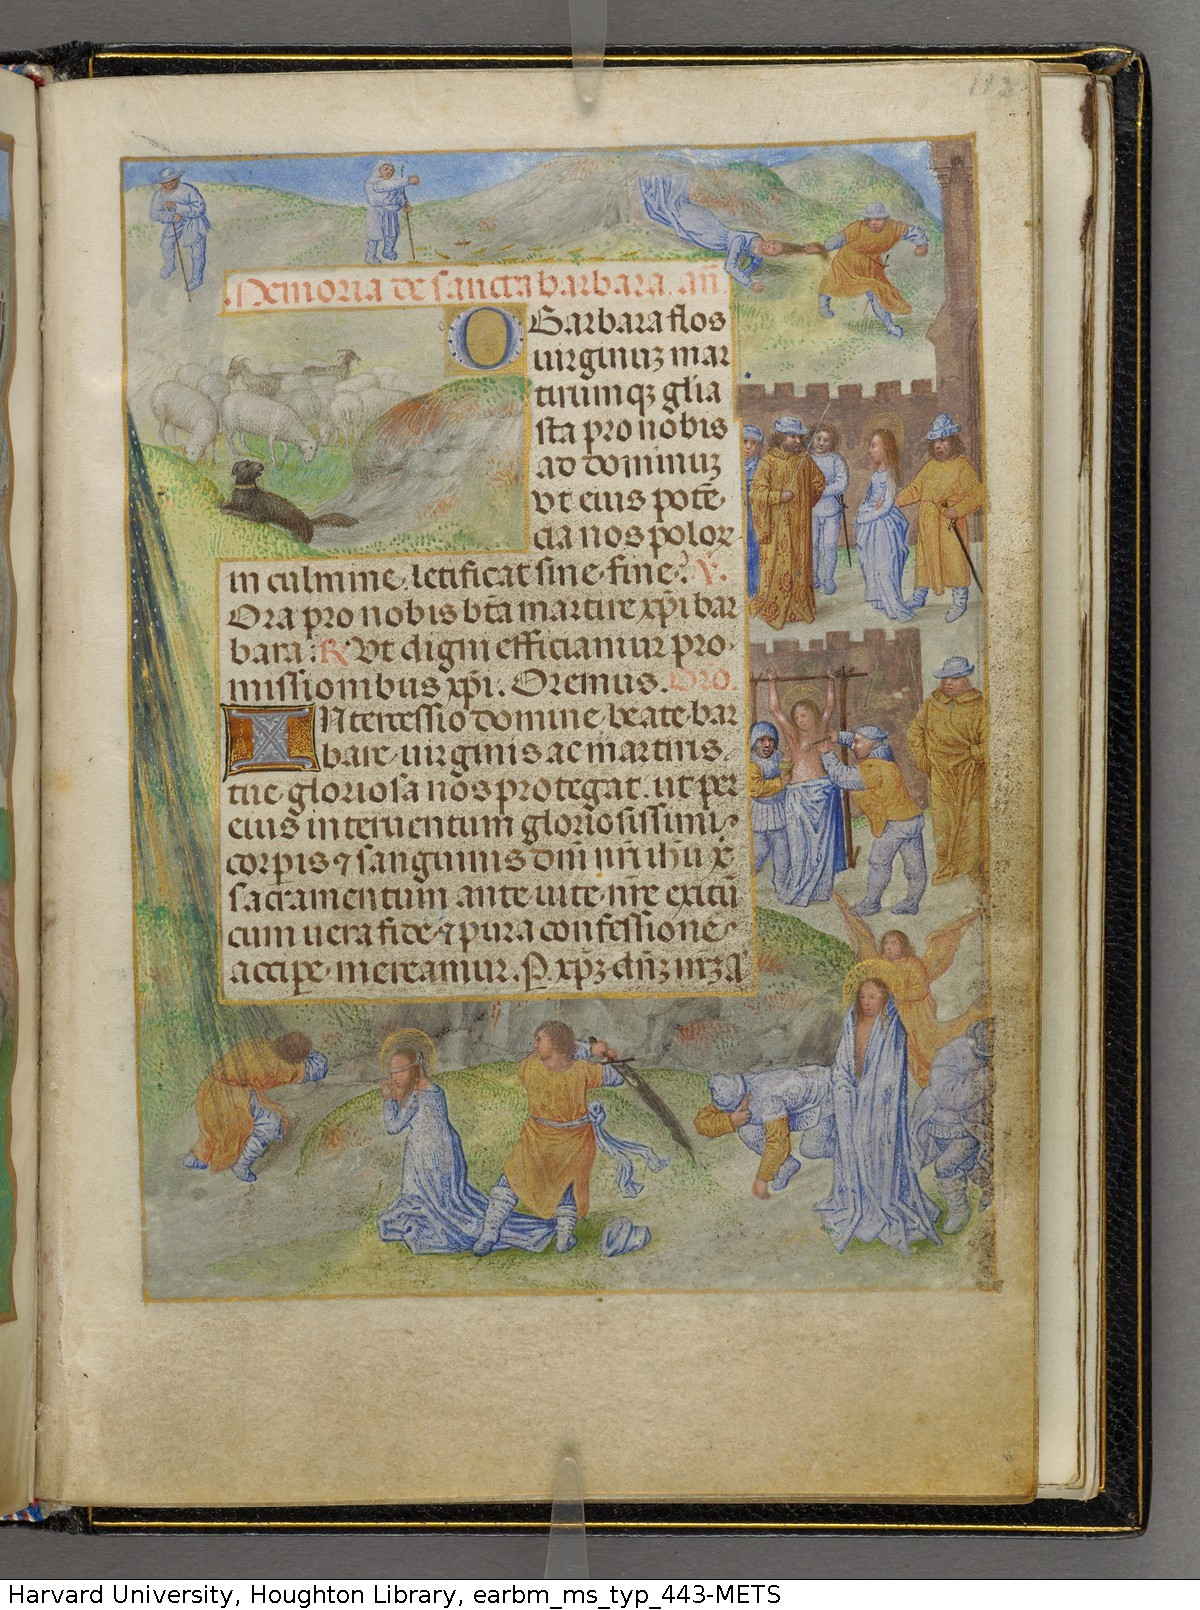 Emerson-White Hours use of Rome 1480 ca Harvard University, Houghton Library, MSS Typ 443 fol 113